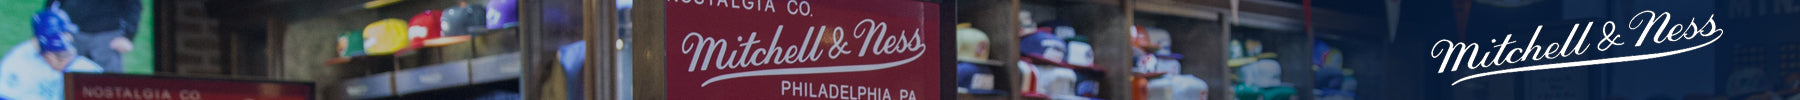 Mitchell & Ness header